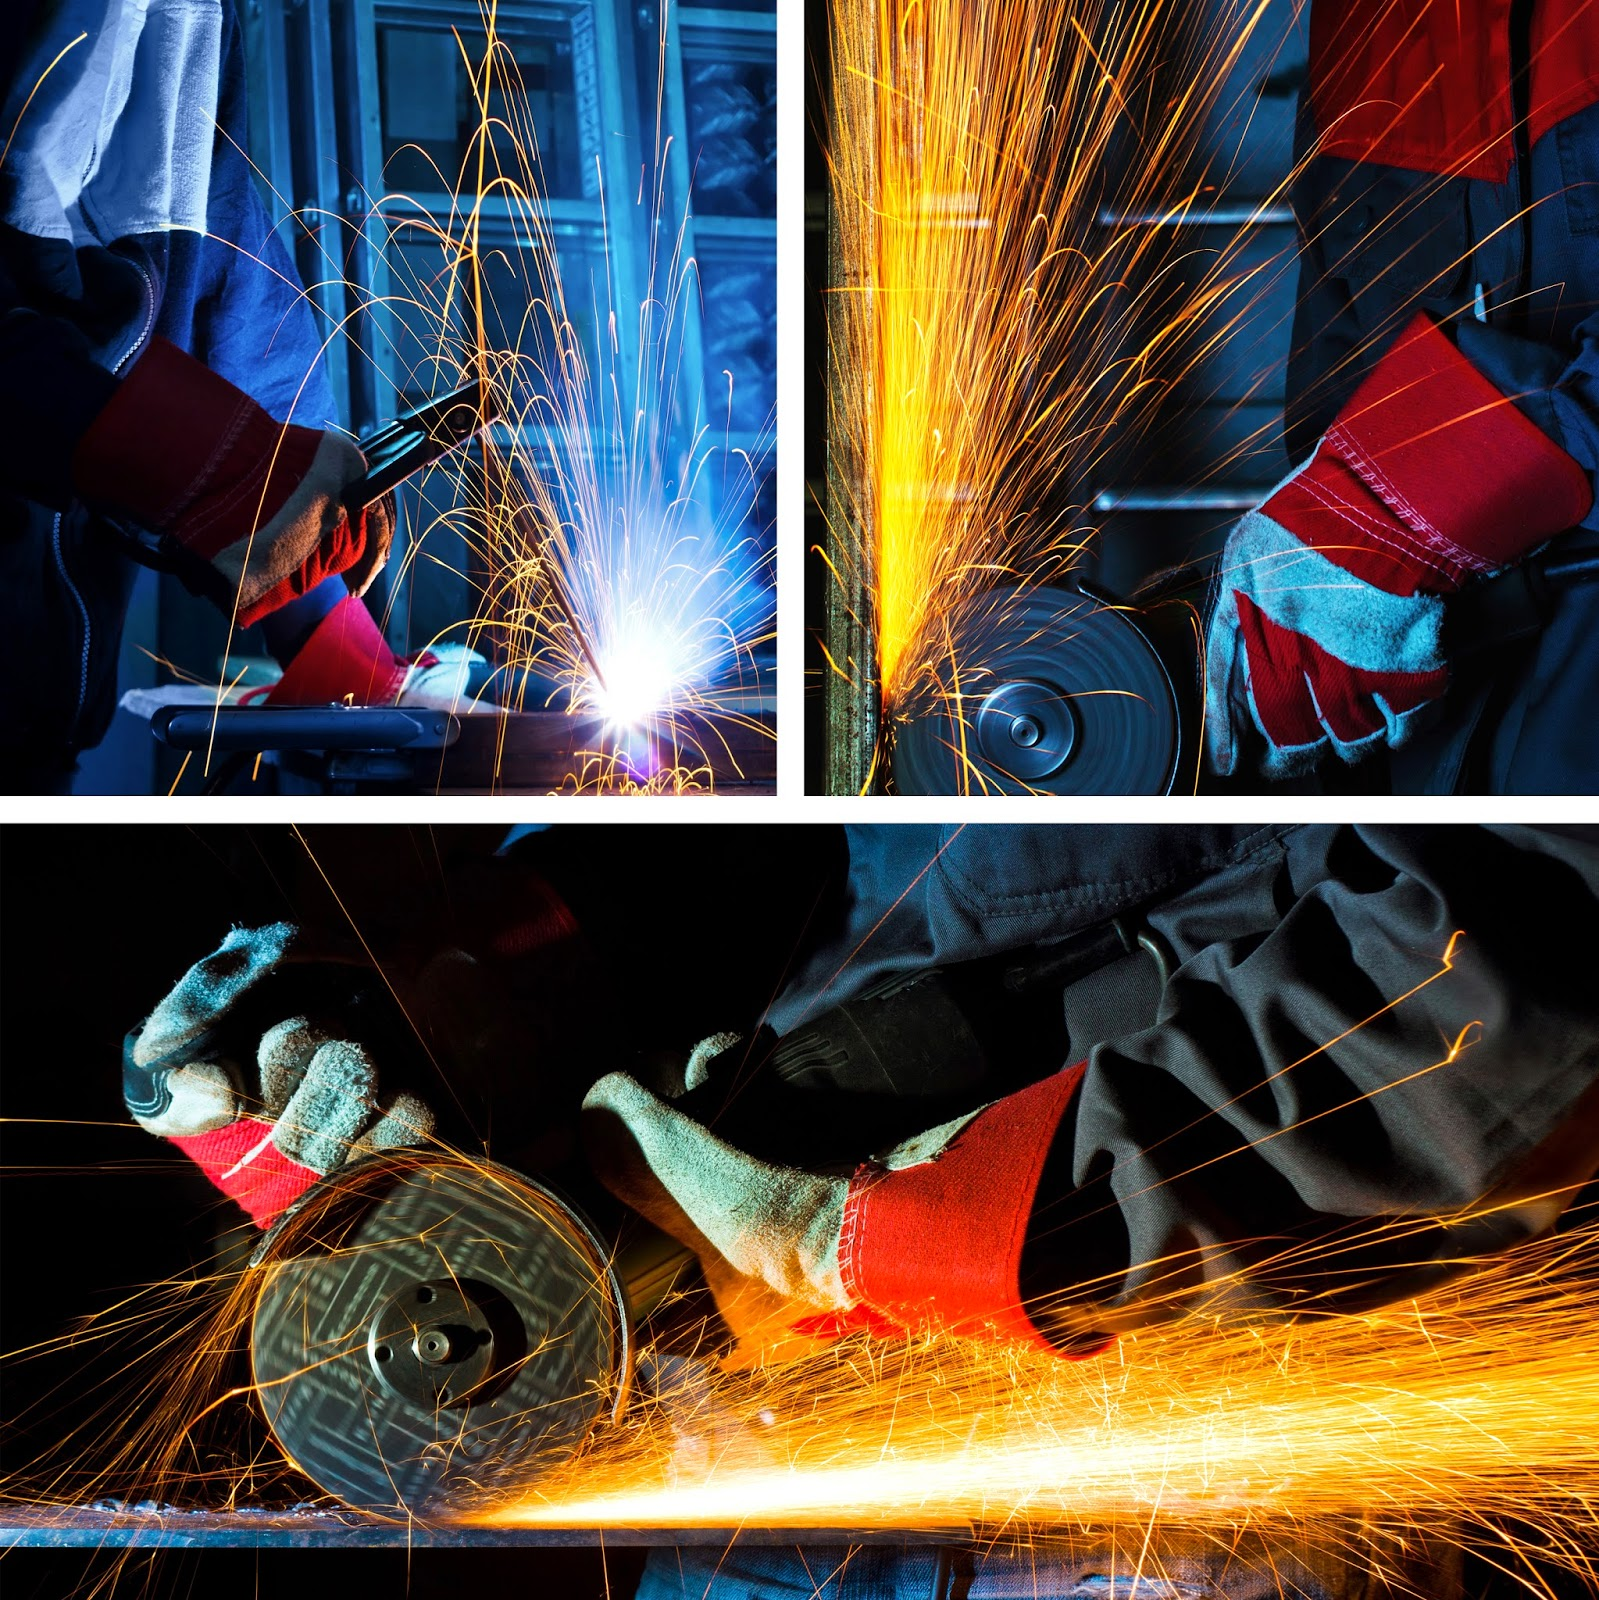 Metal fabrication welder - ensure quality product